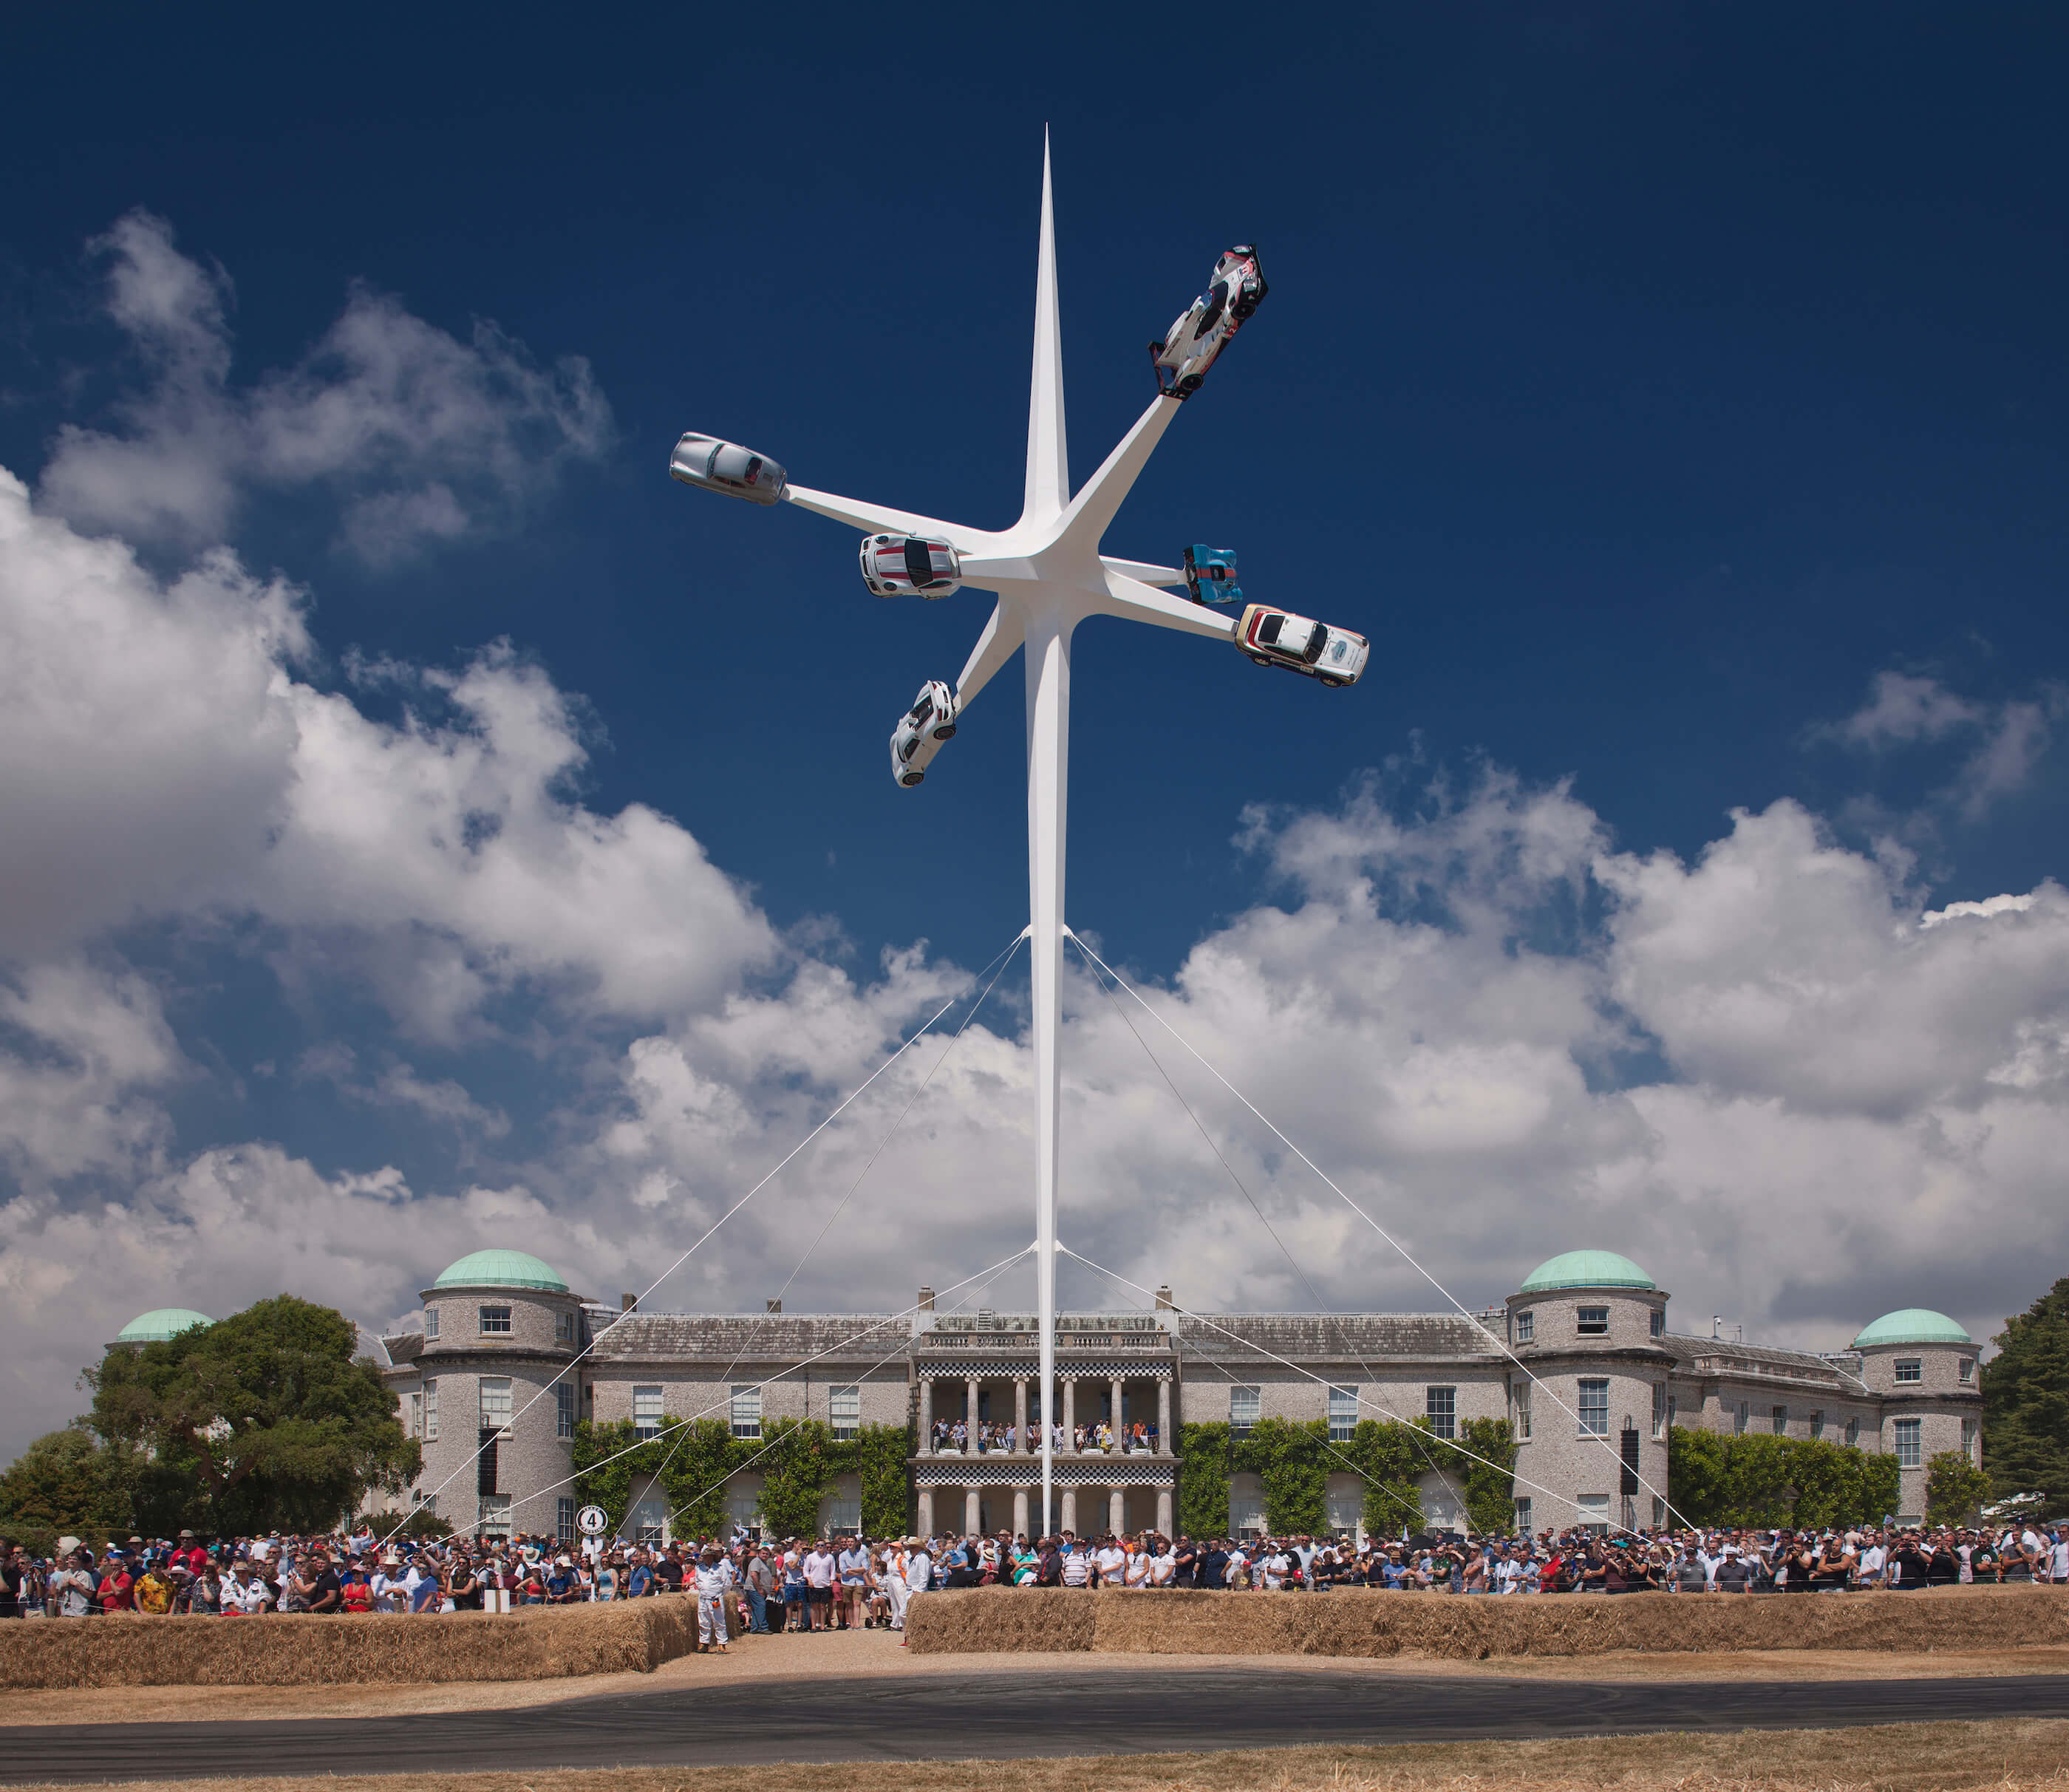 1_Gerry Judah_Goodwood Festival of Speed 2018 Sculpture_Inspirationist